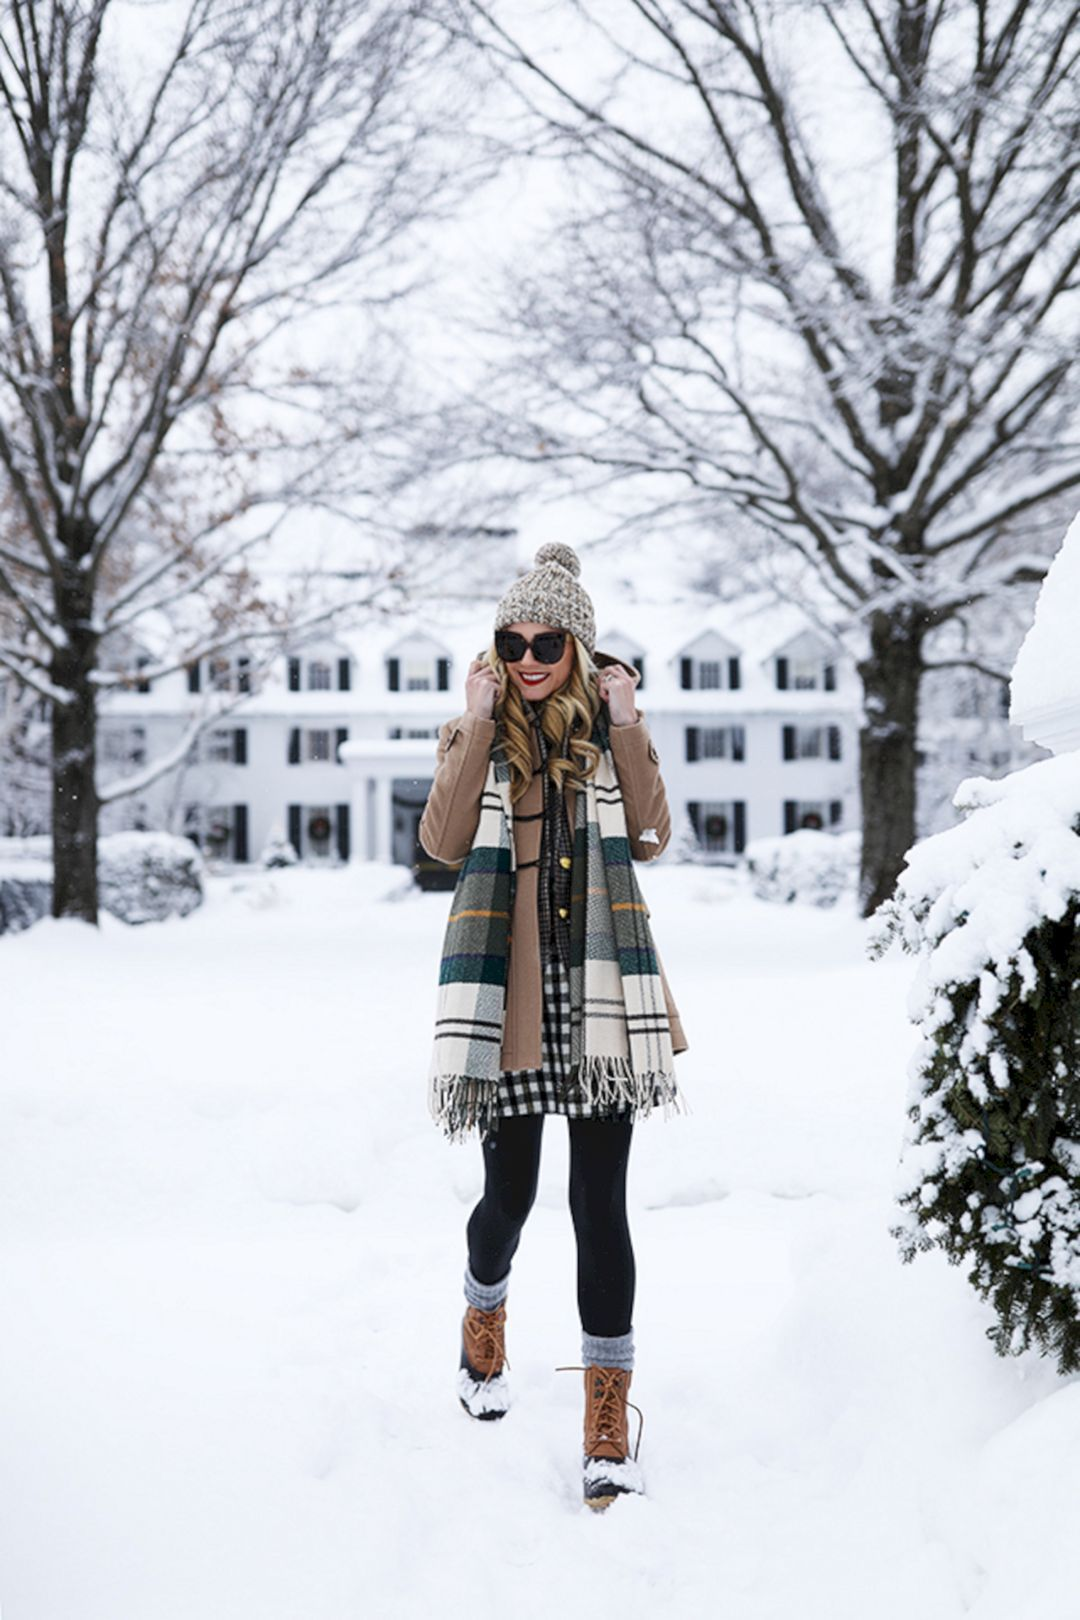 Pin by Sofia Brindisi on Everyday clothes | Snow outfit ...